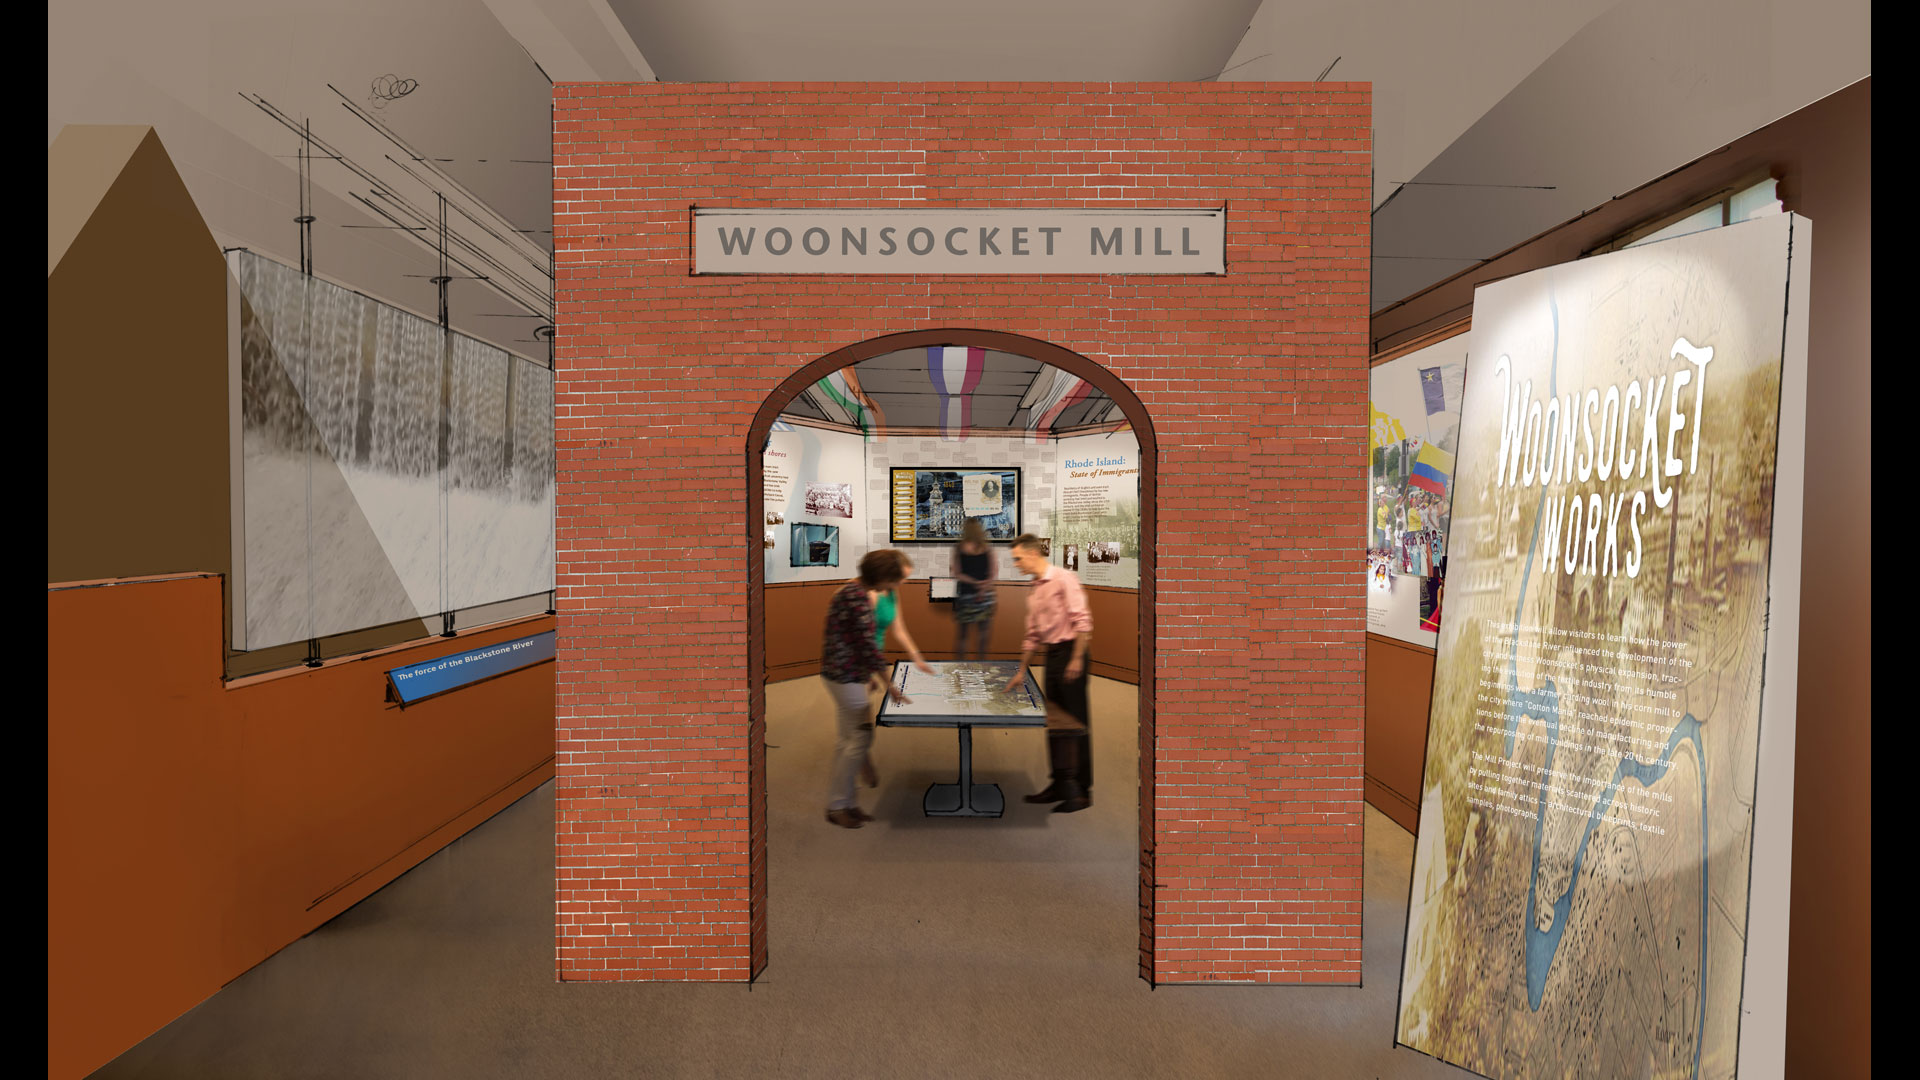 This multi-touch gestural interface exhibit uses the Blackstone River as a metaphor for change; visitors learn about how the mills changed the historical landscape of Woonsocket, RI. The interface allows multiple users to access a series of maps tapping into deeper content depending on the visitor's interest.